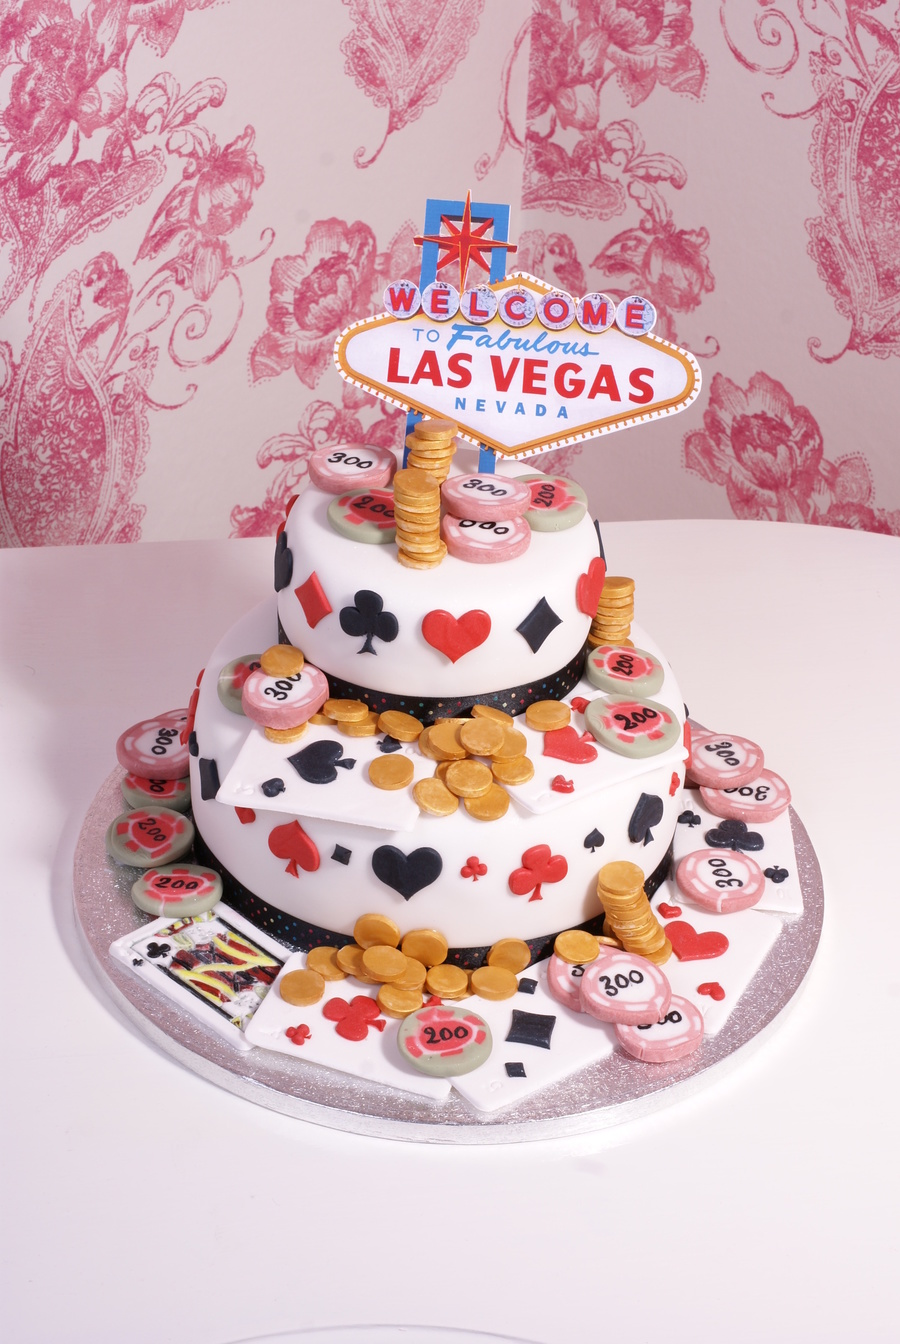 Las Vegas on Cake Central